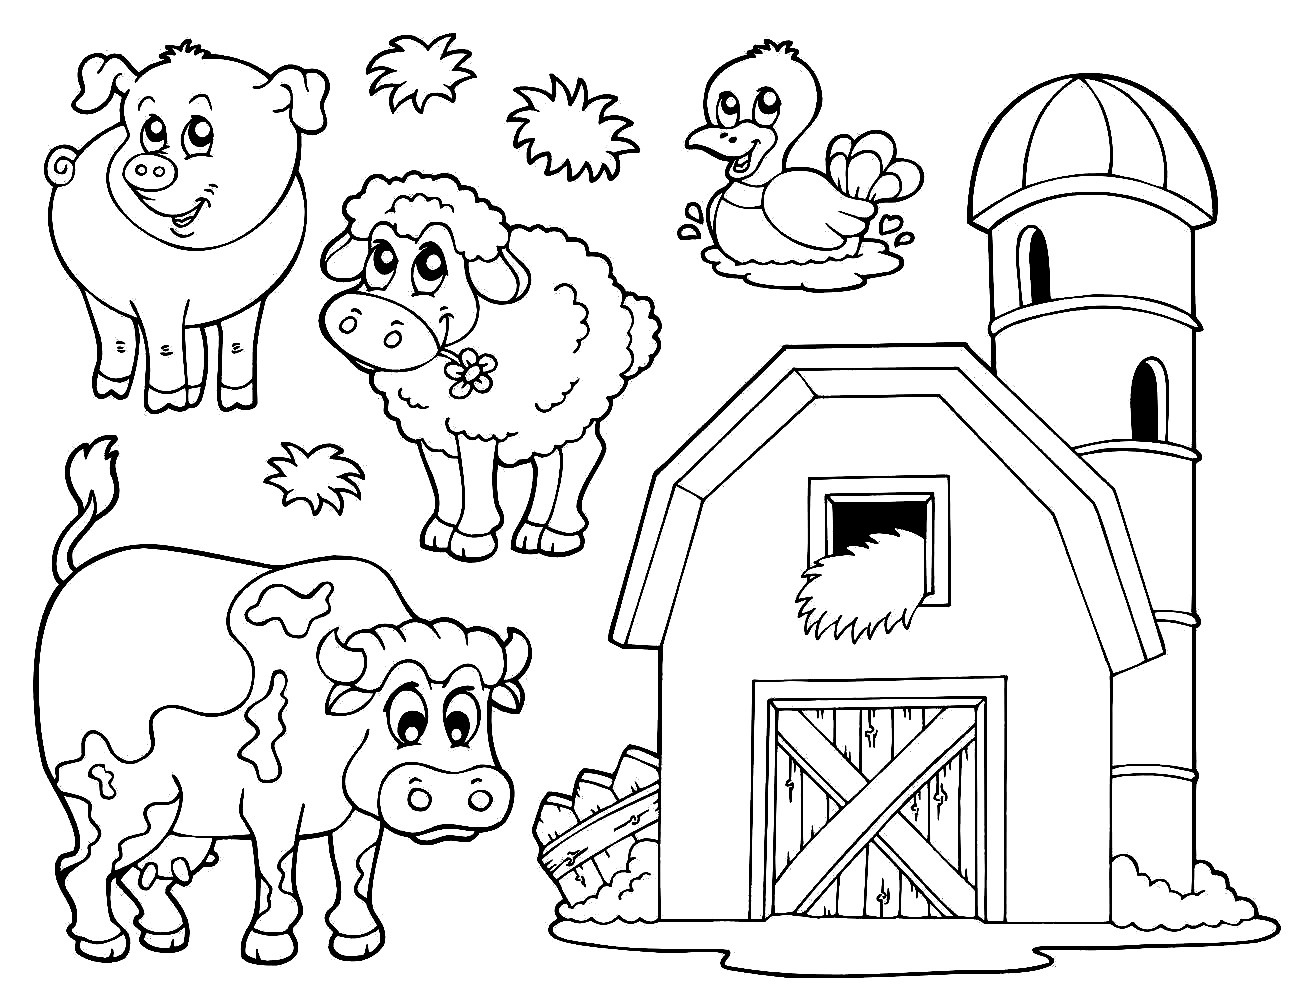 Coloring Pages Of Farm Animals For Preschoolers At